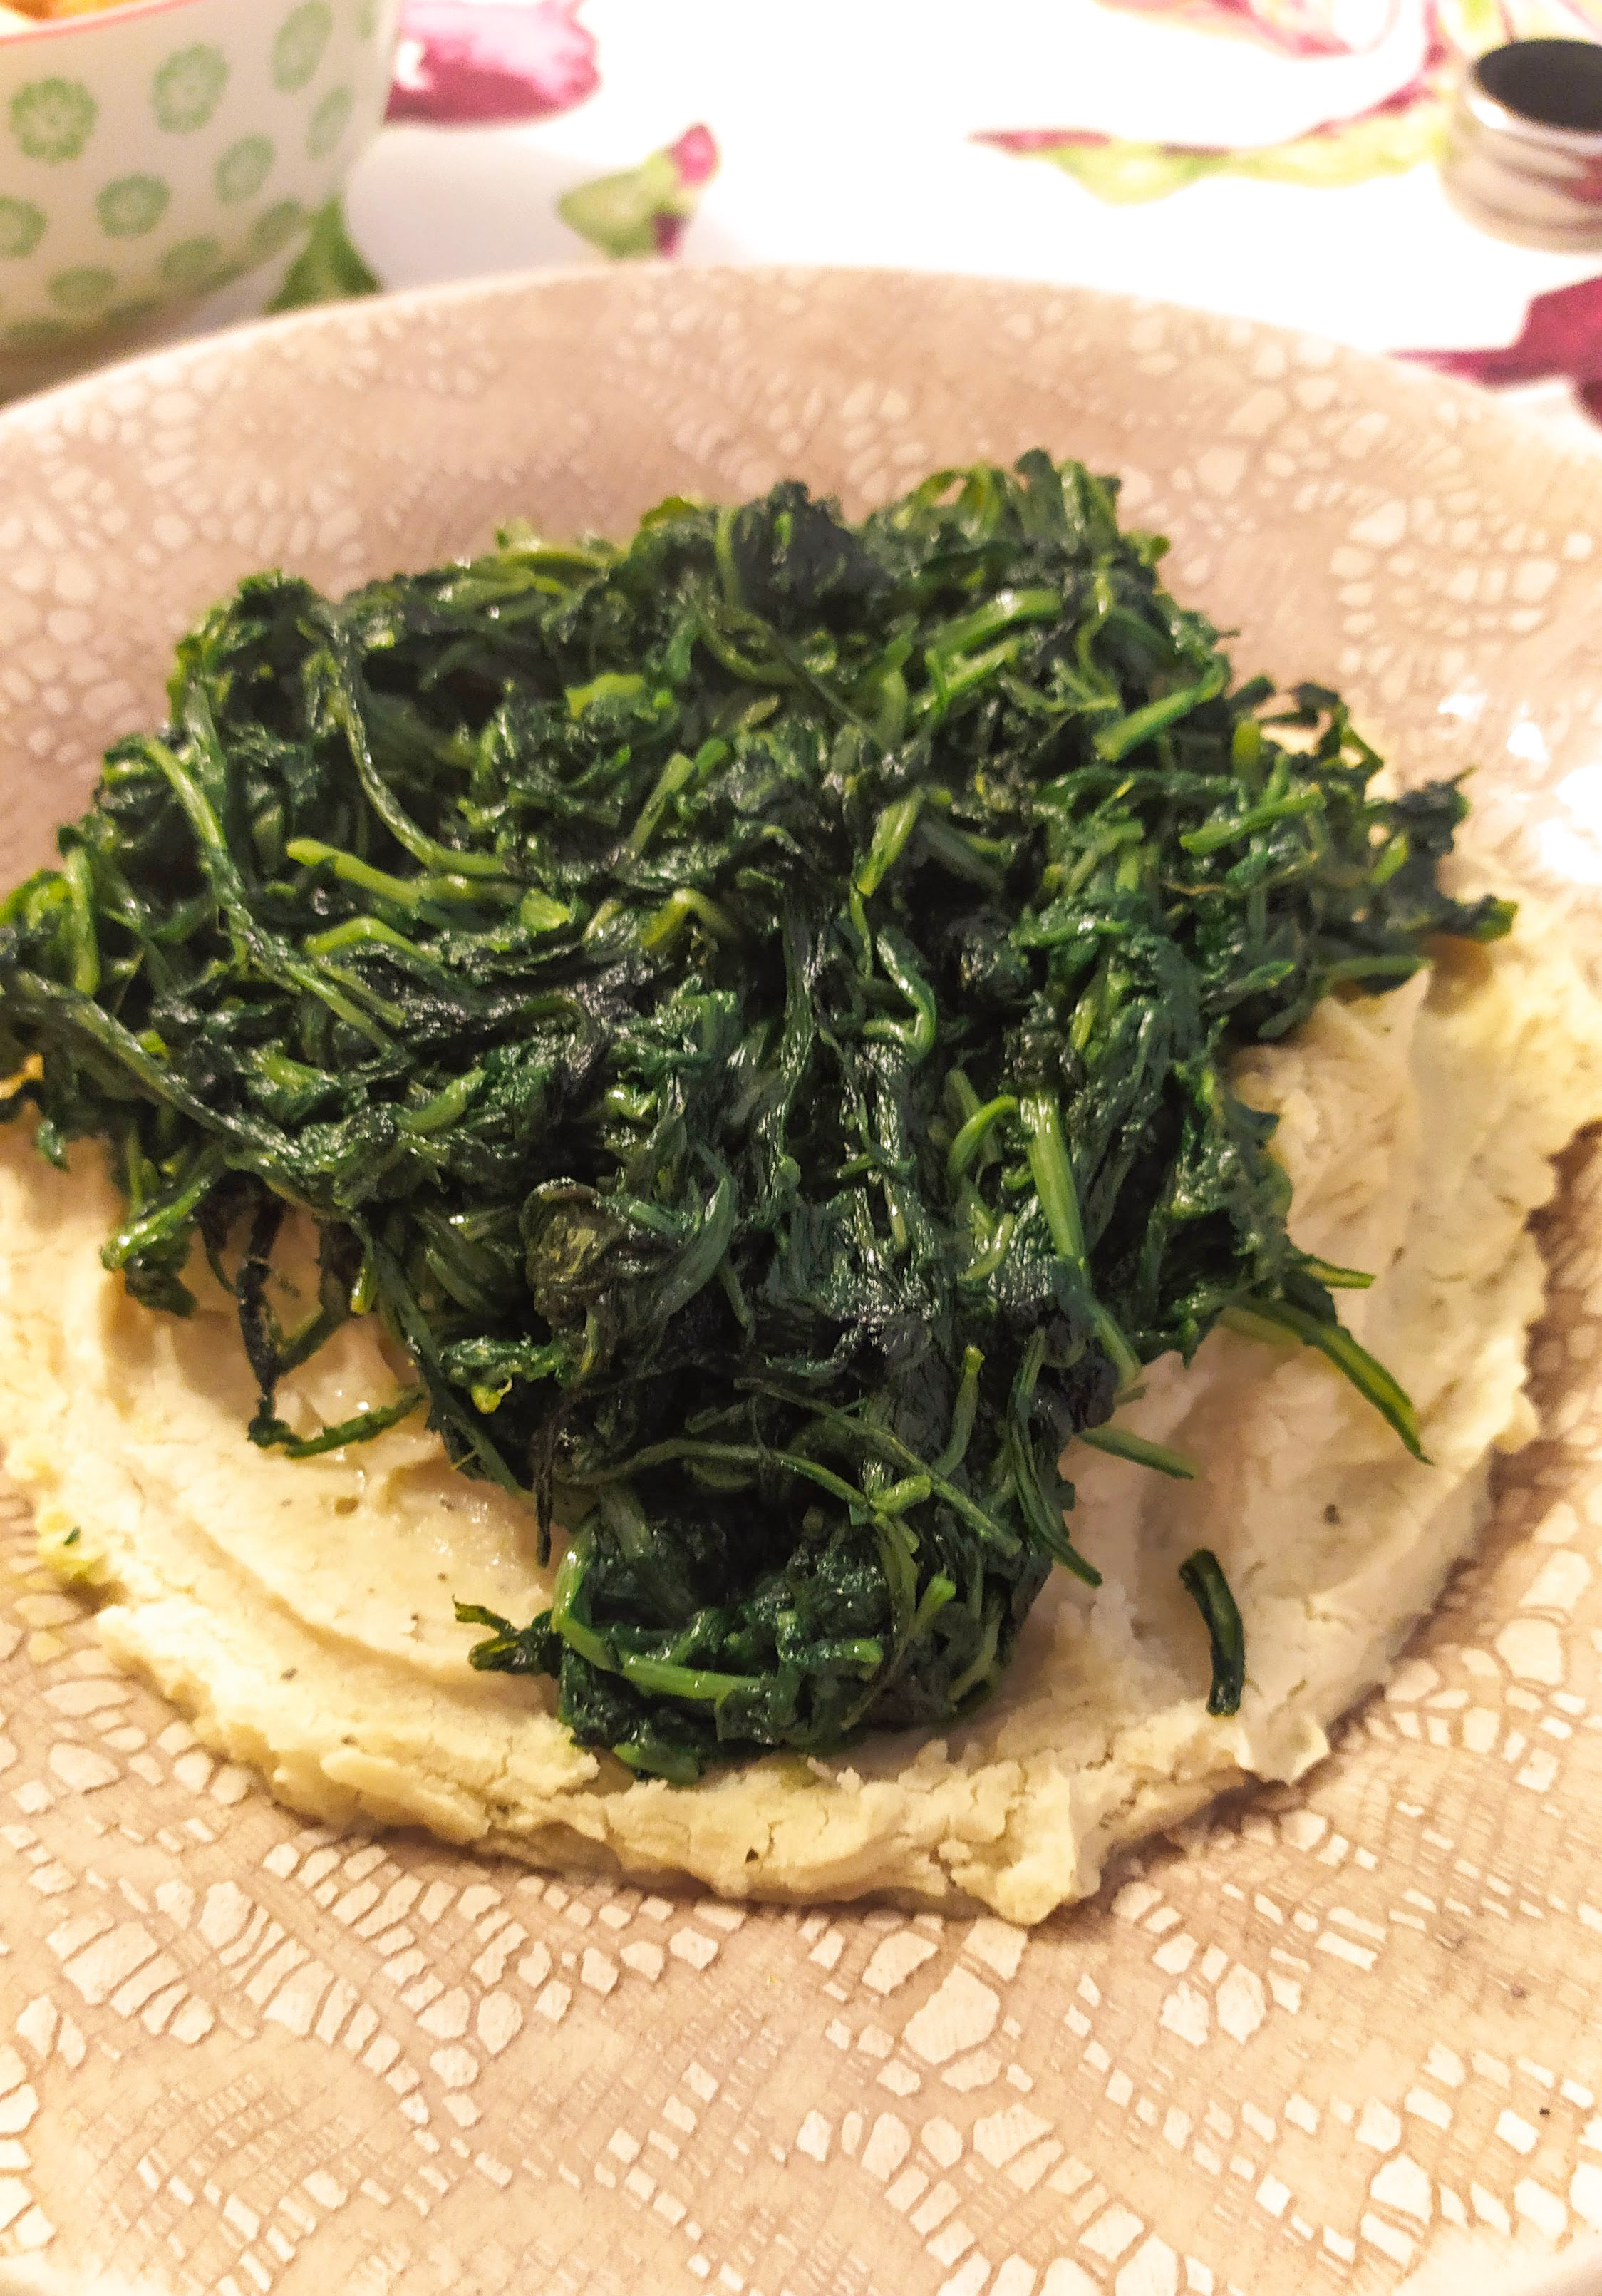 mashed fava beans with wild chicory